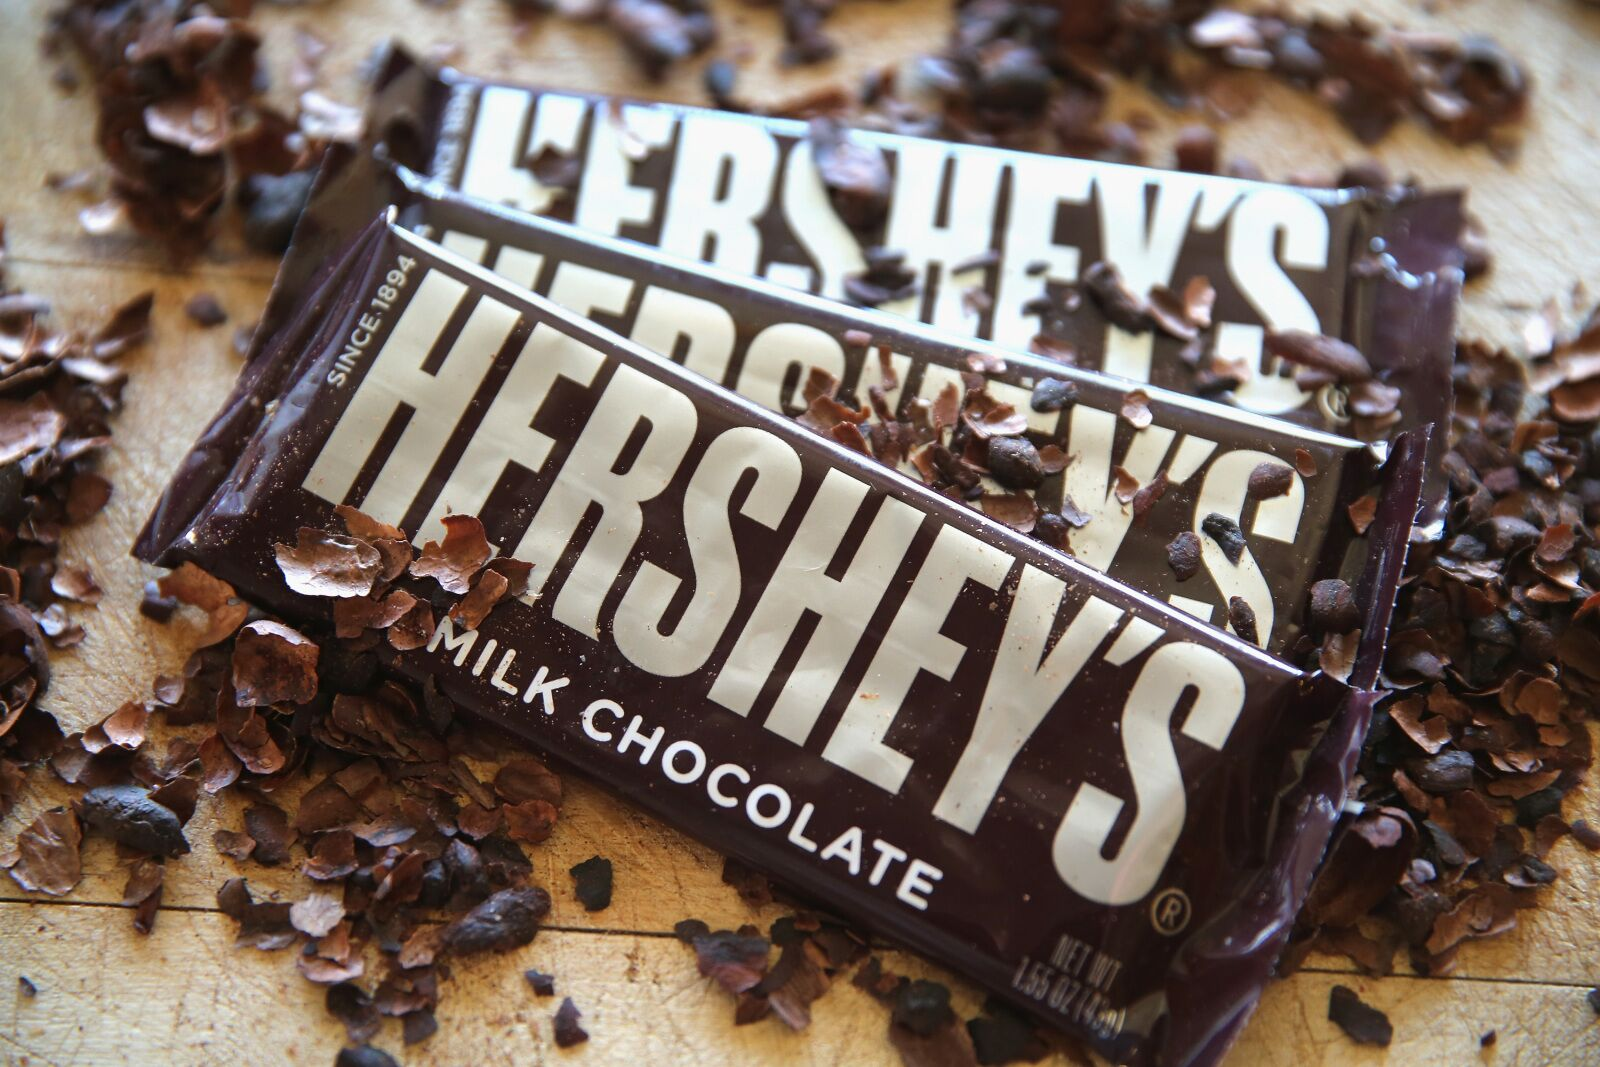 Etude House's Hershey-inspired makeup line will leave your stomach growling